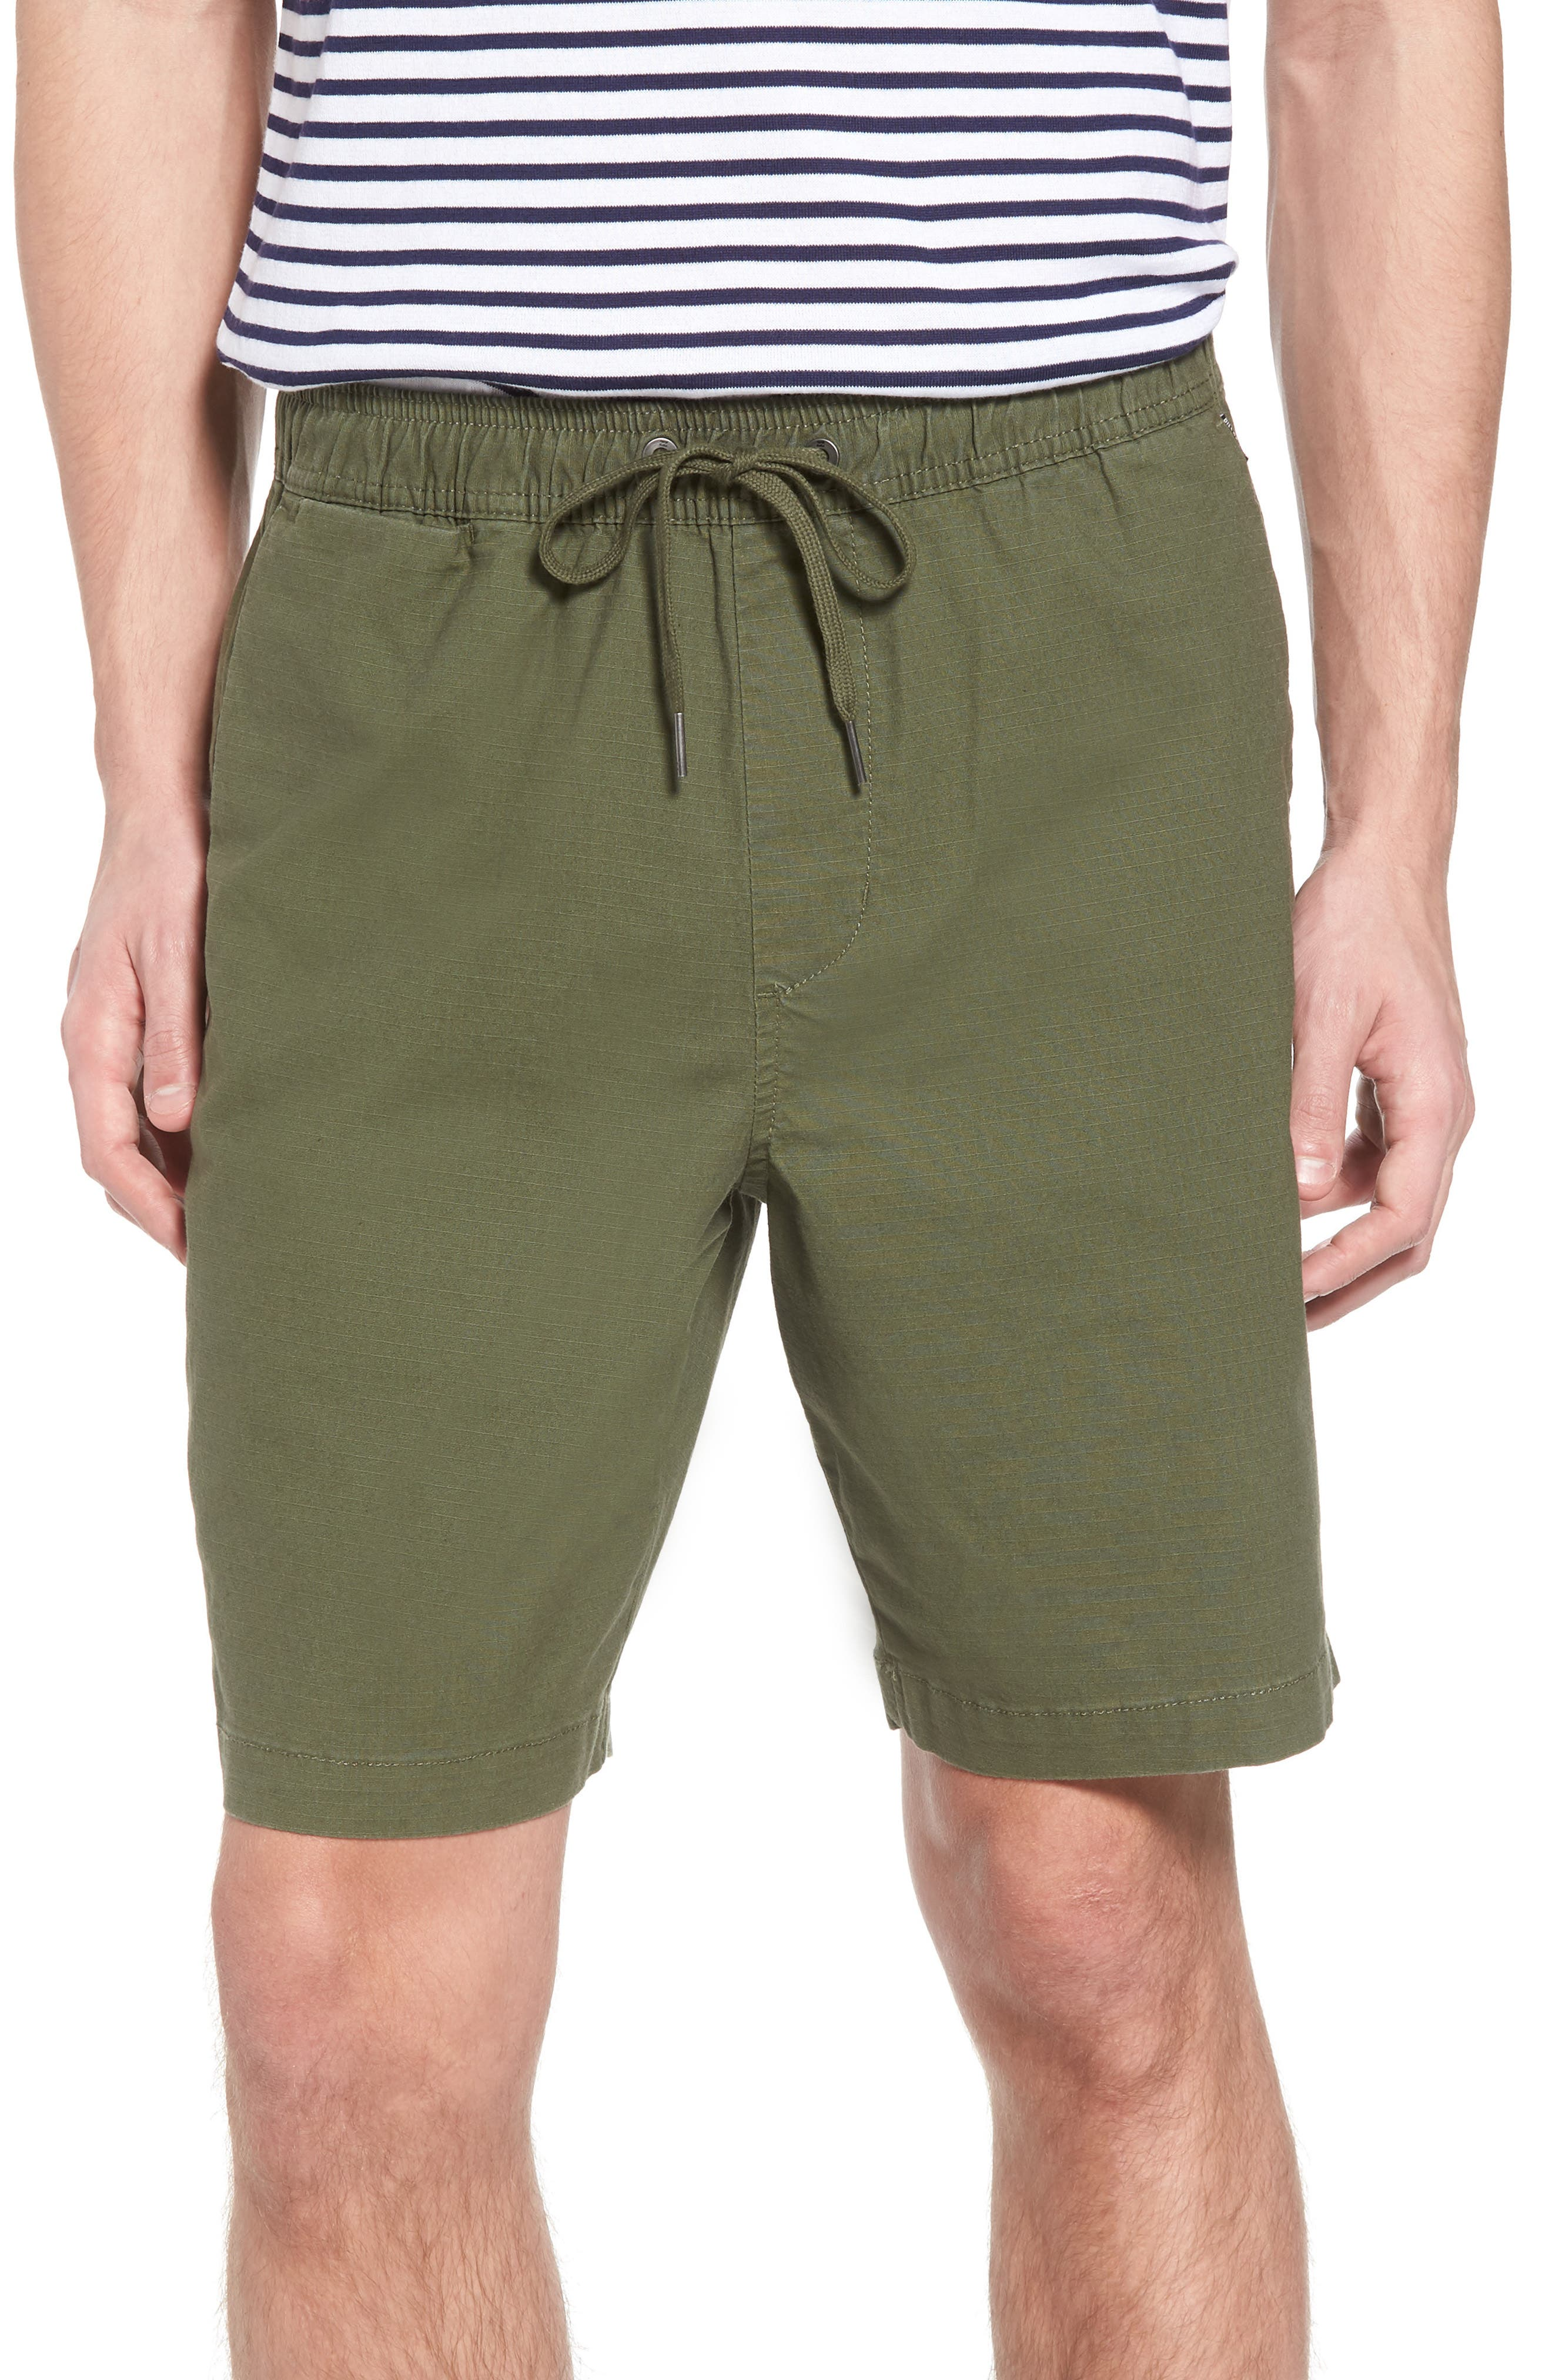 Larry Layback Shorts,                         Main,                         color, Dark Olive